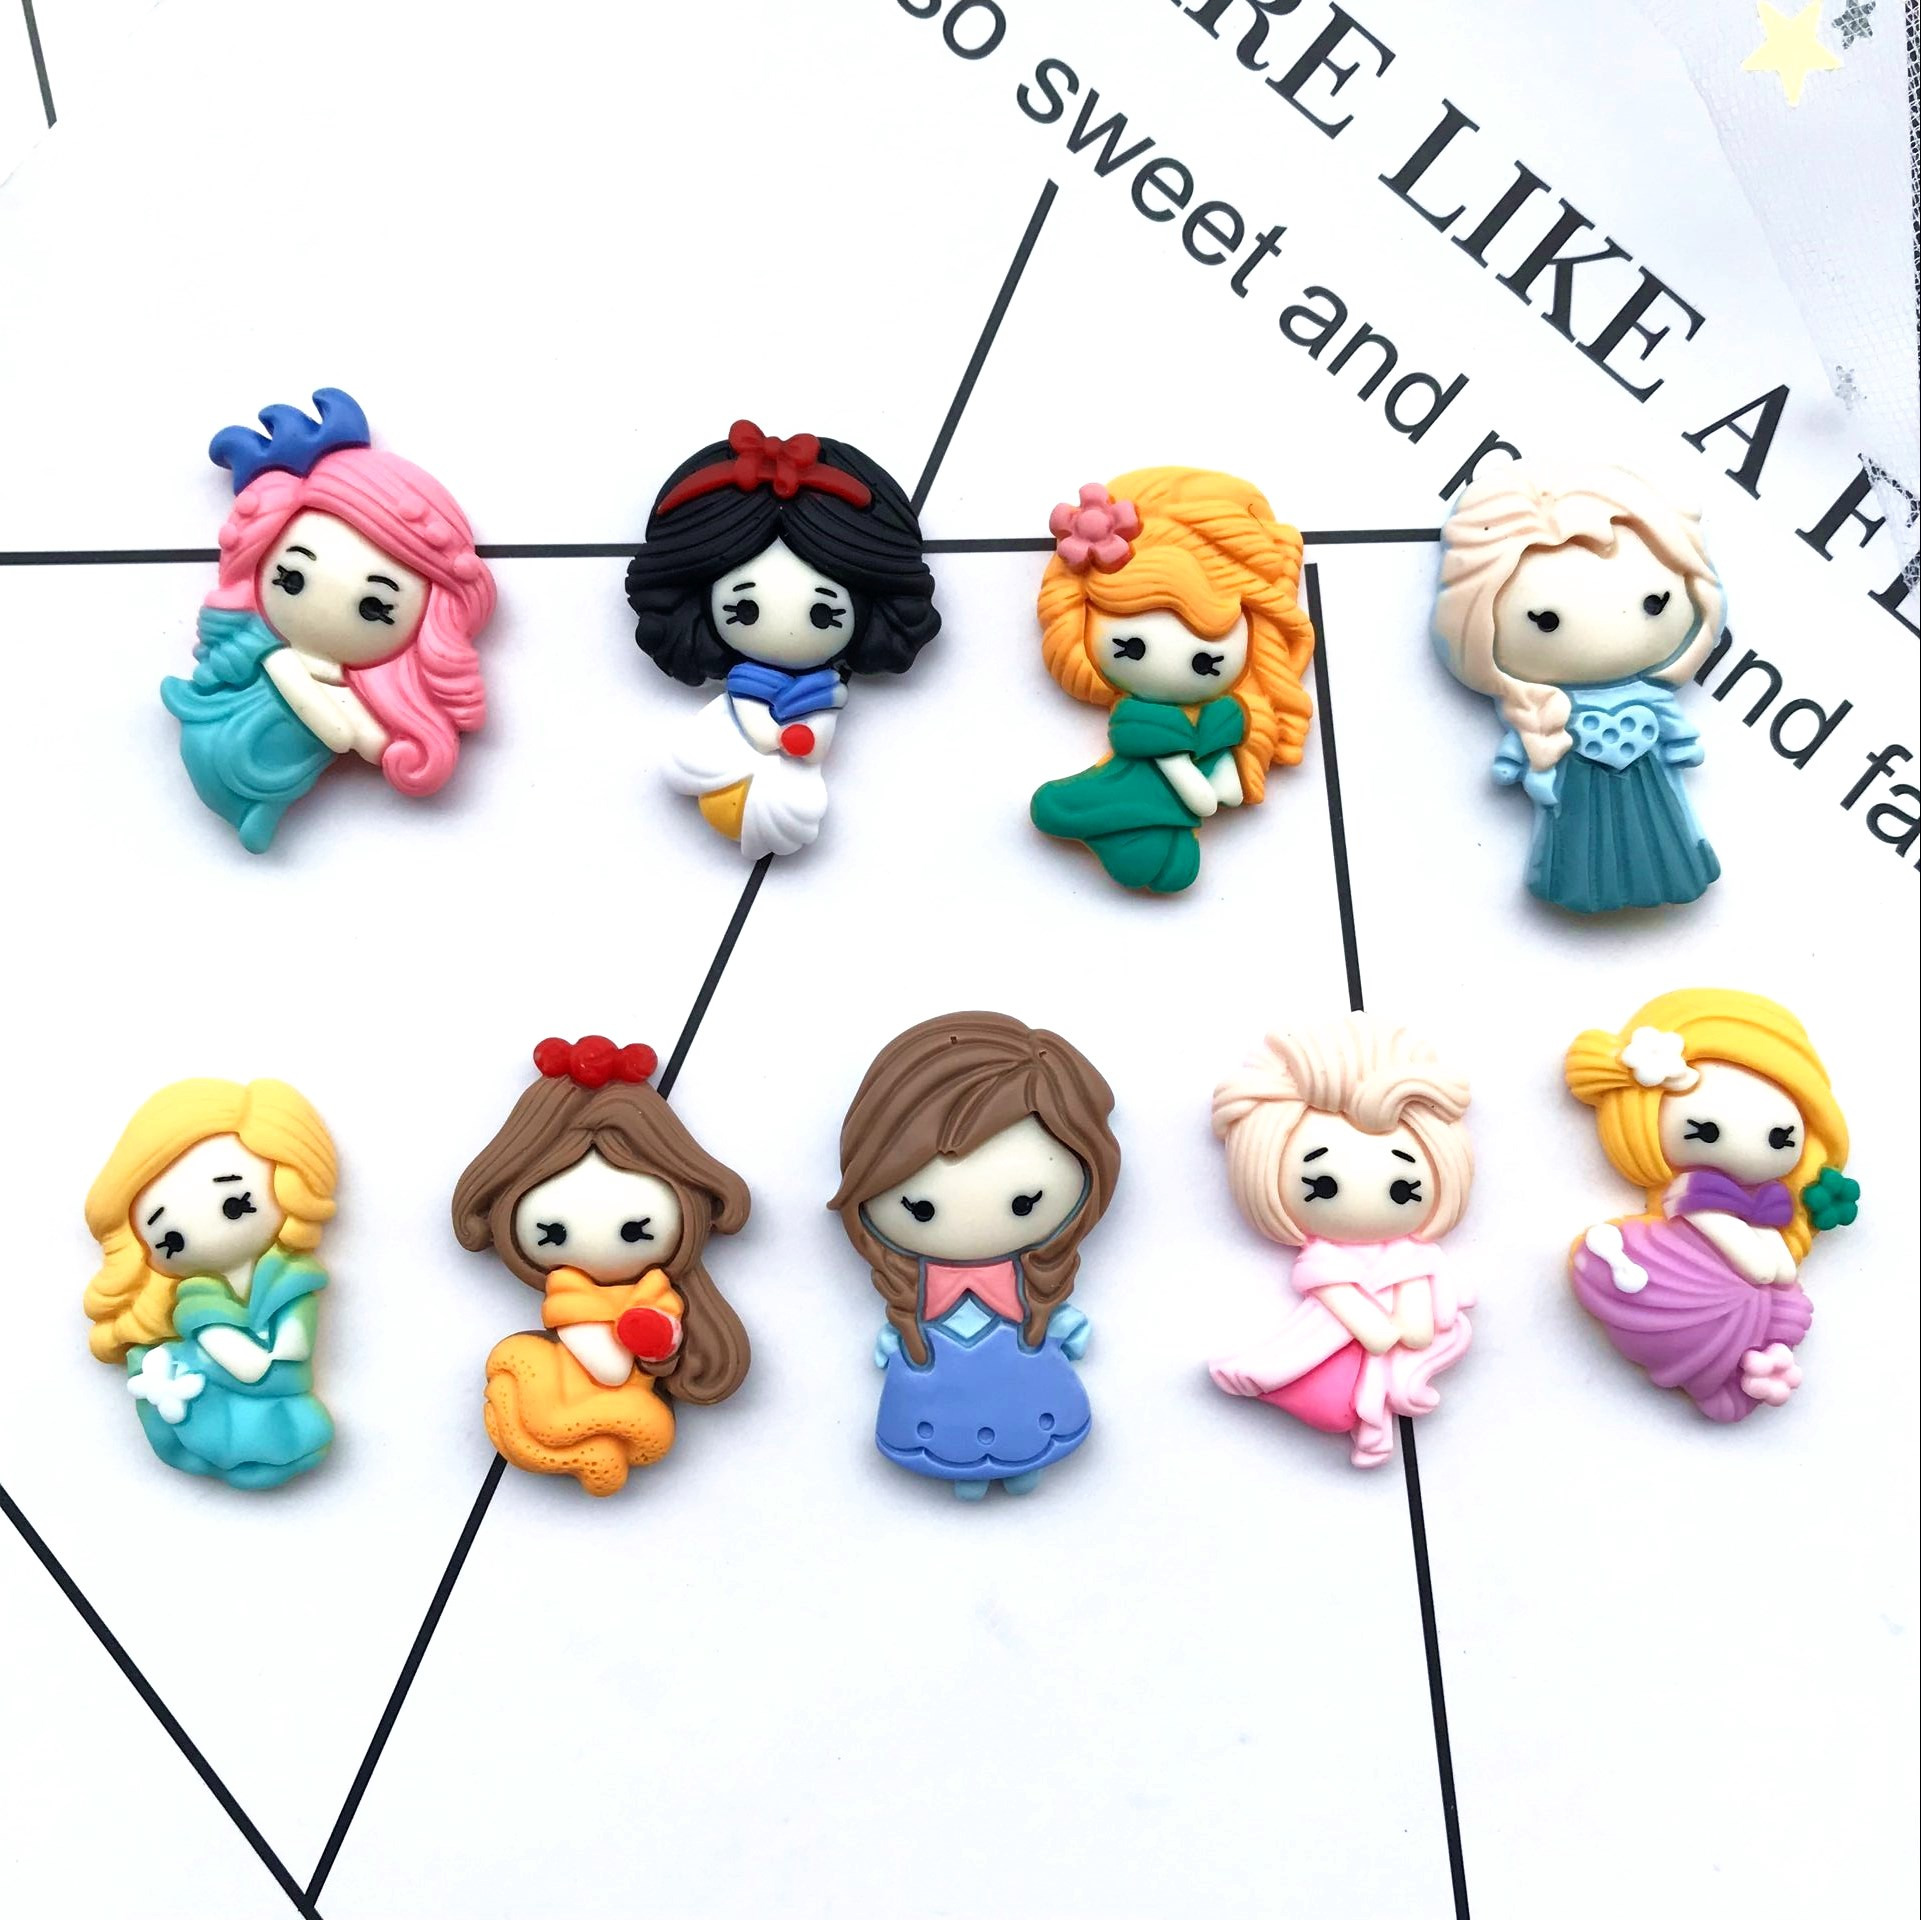 Free Shipping  New Flat Back Resin Princess Children Send Hair Clips To Decorate DIY